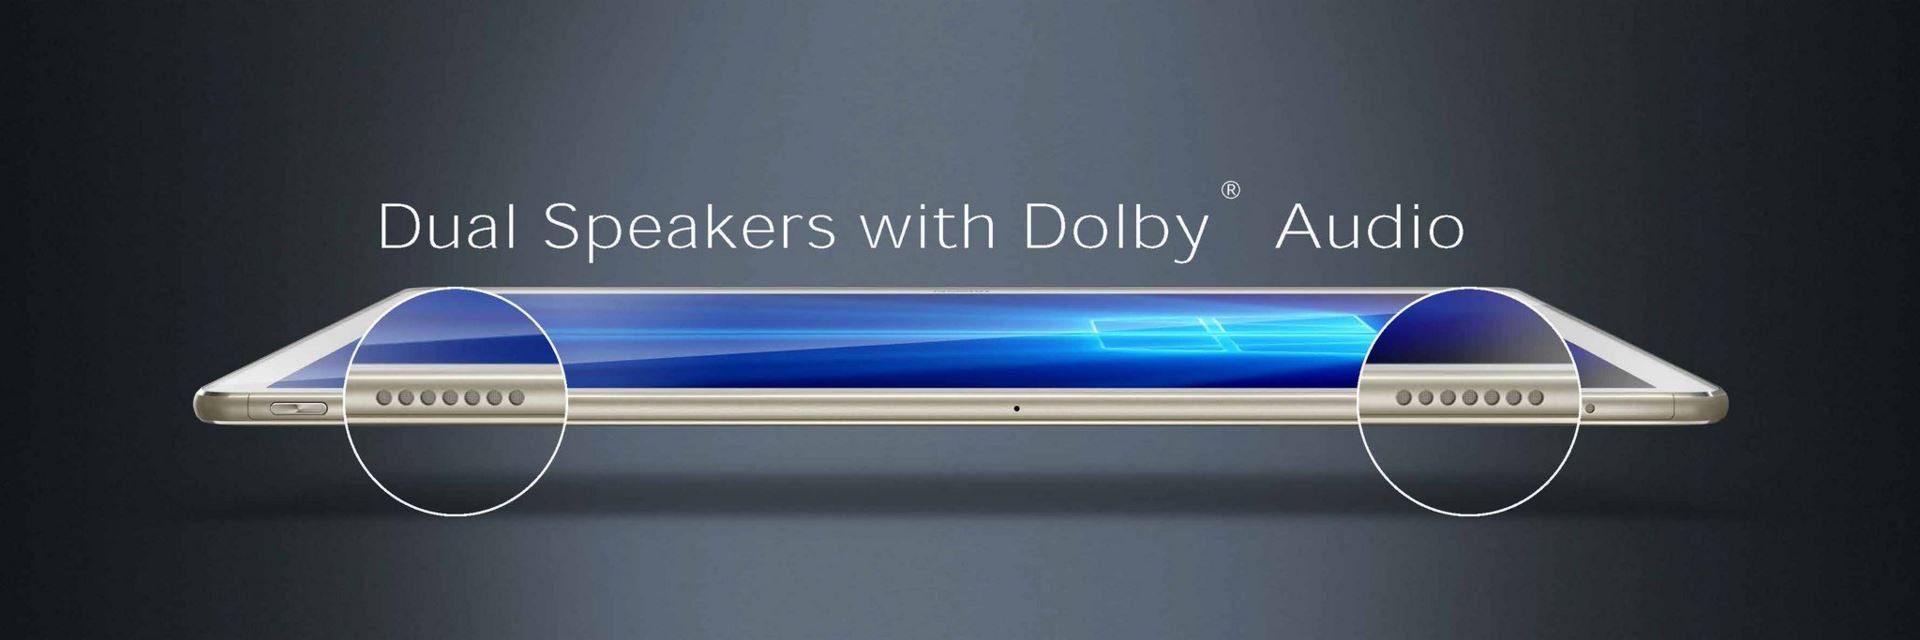 huawei matebook dolby